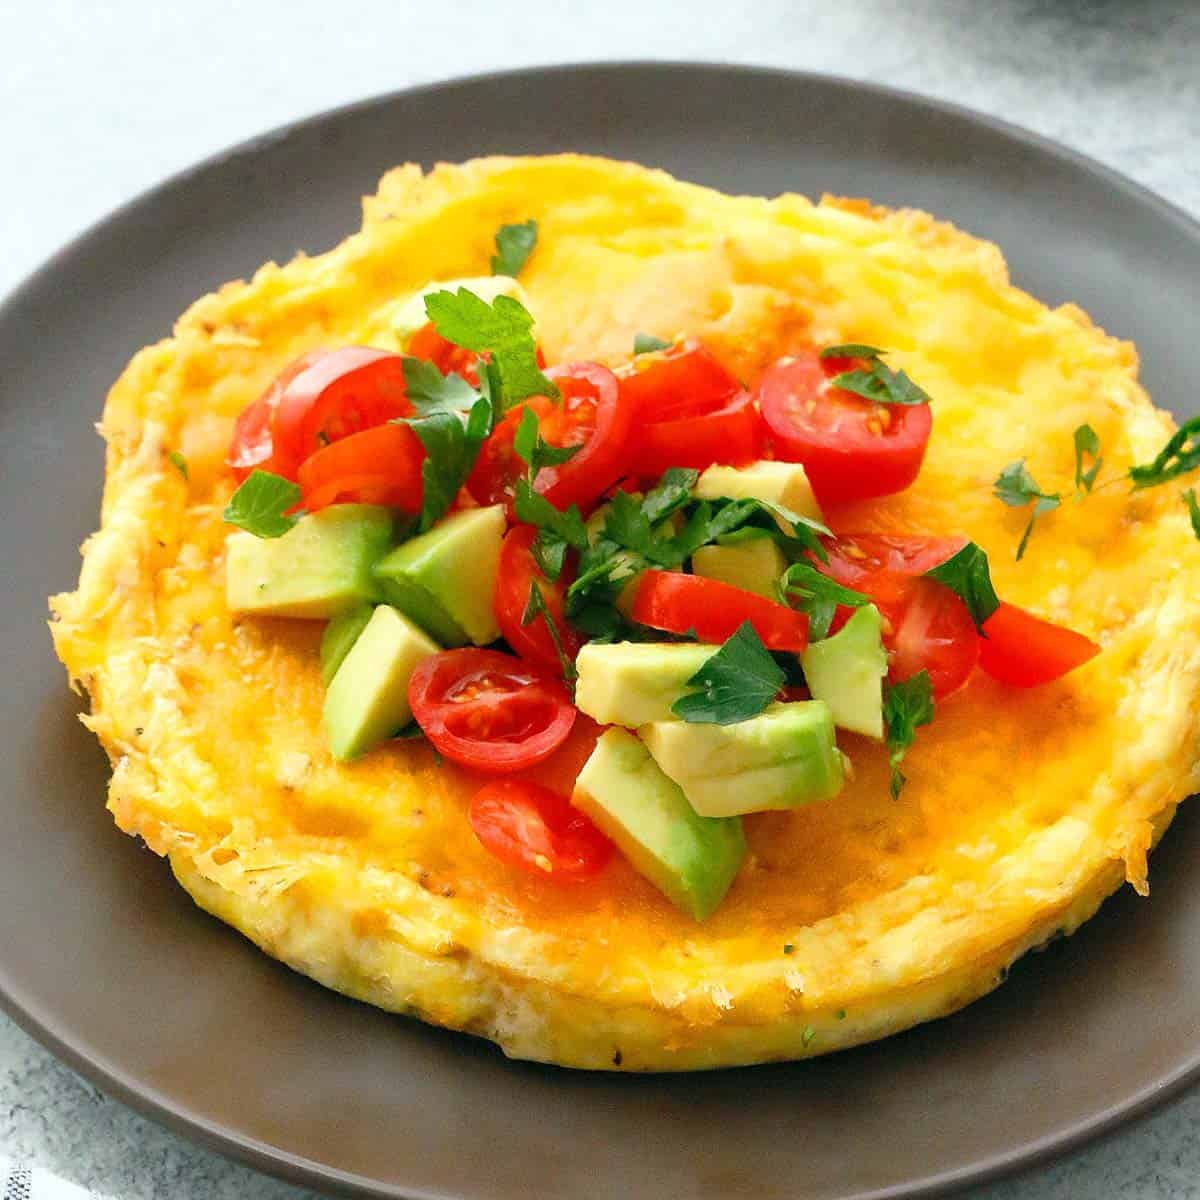 brown plate with cheesy egg omelette